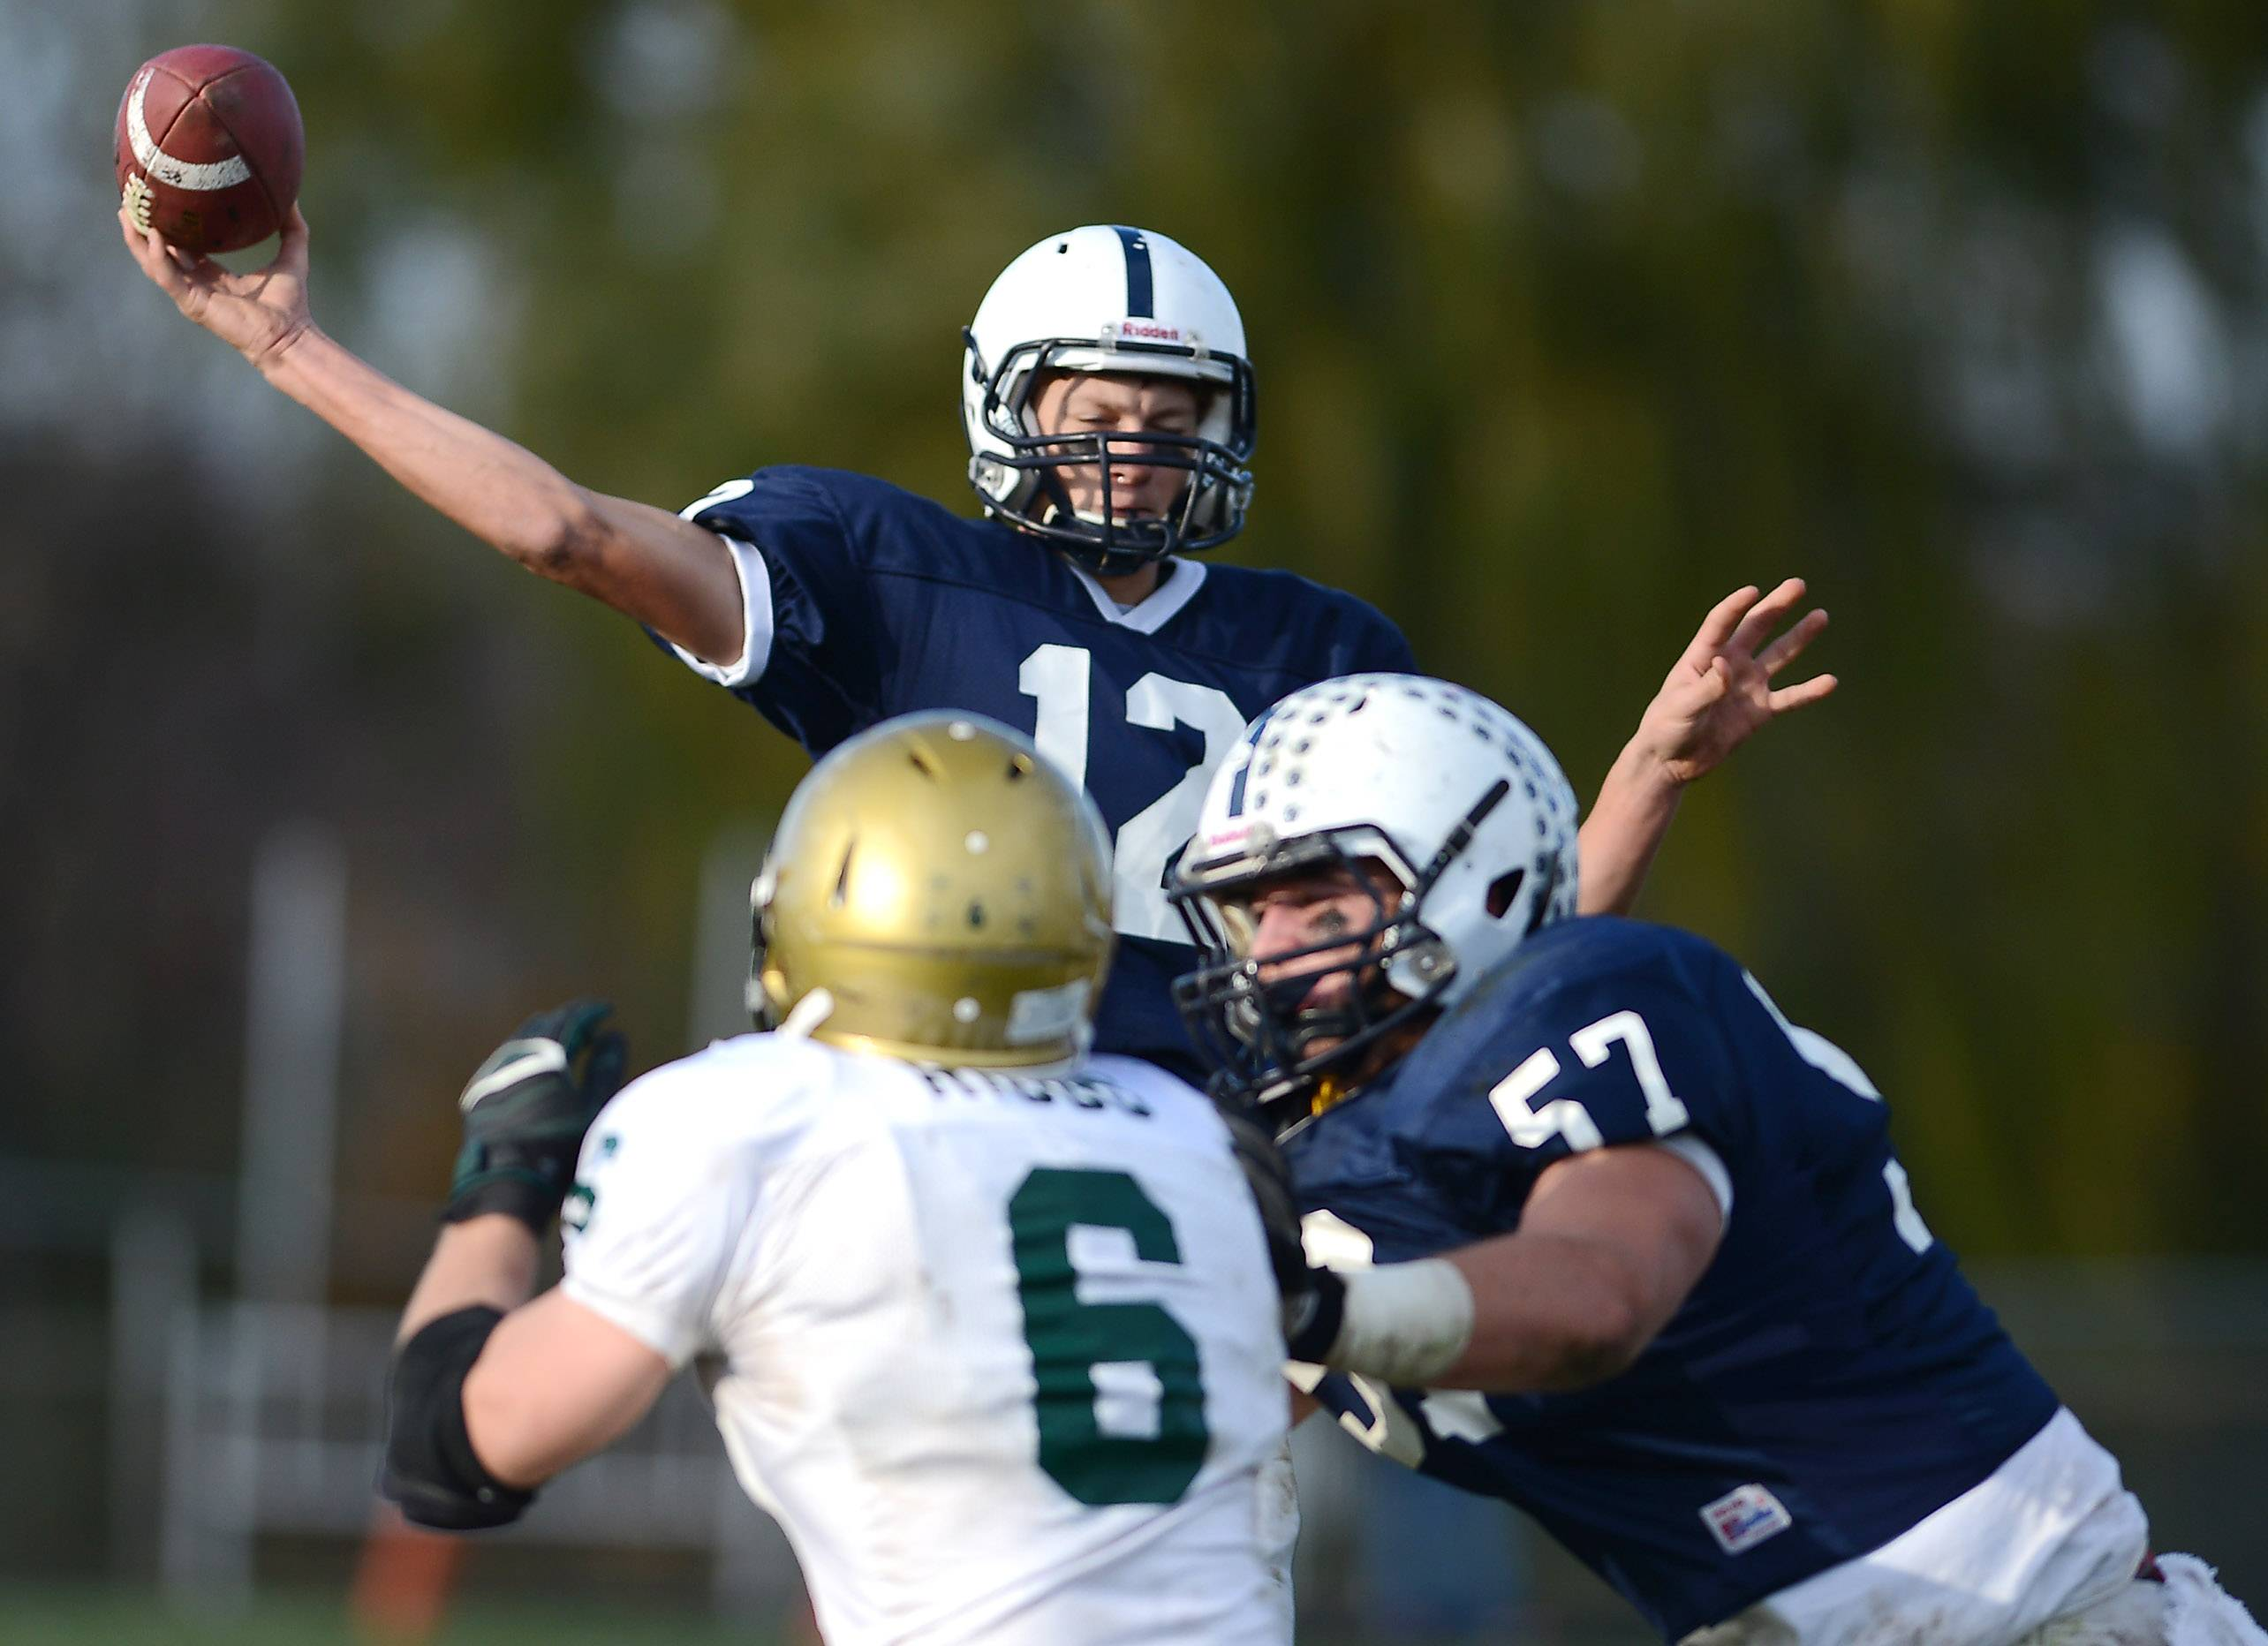 Jason Gregoire (12) is back to lead Cary-Grove this fall.